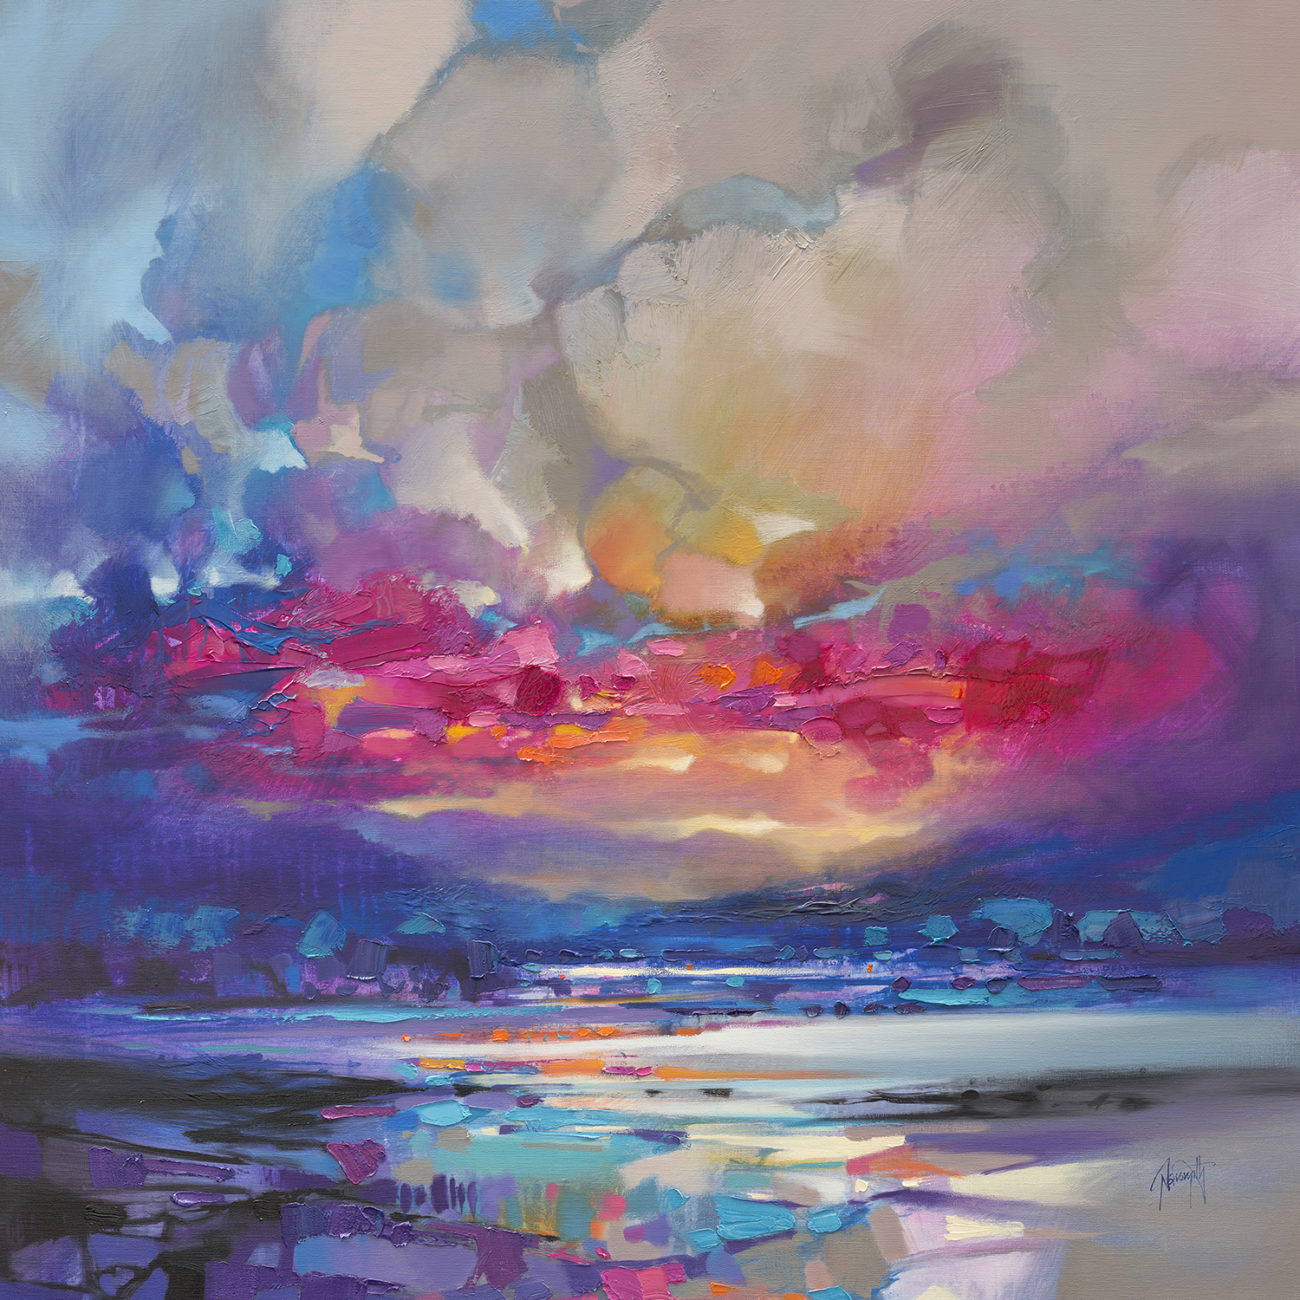 Quantum Skye by Scott Naismith